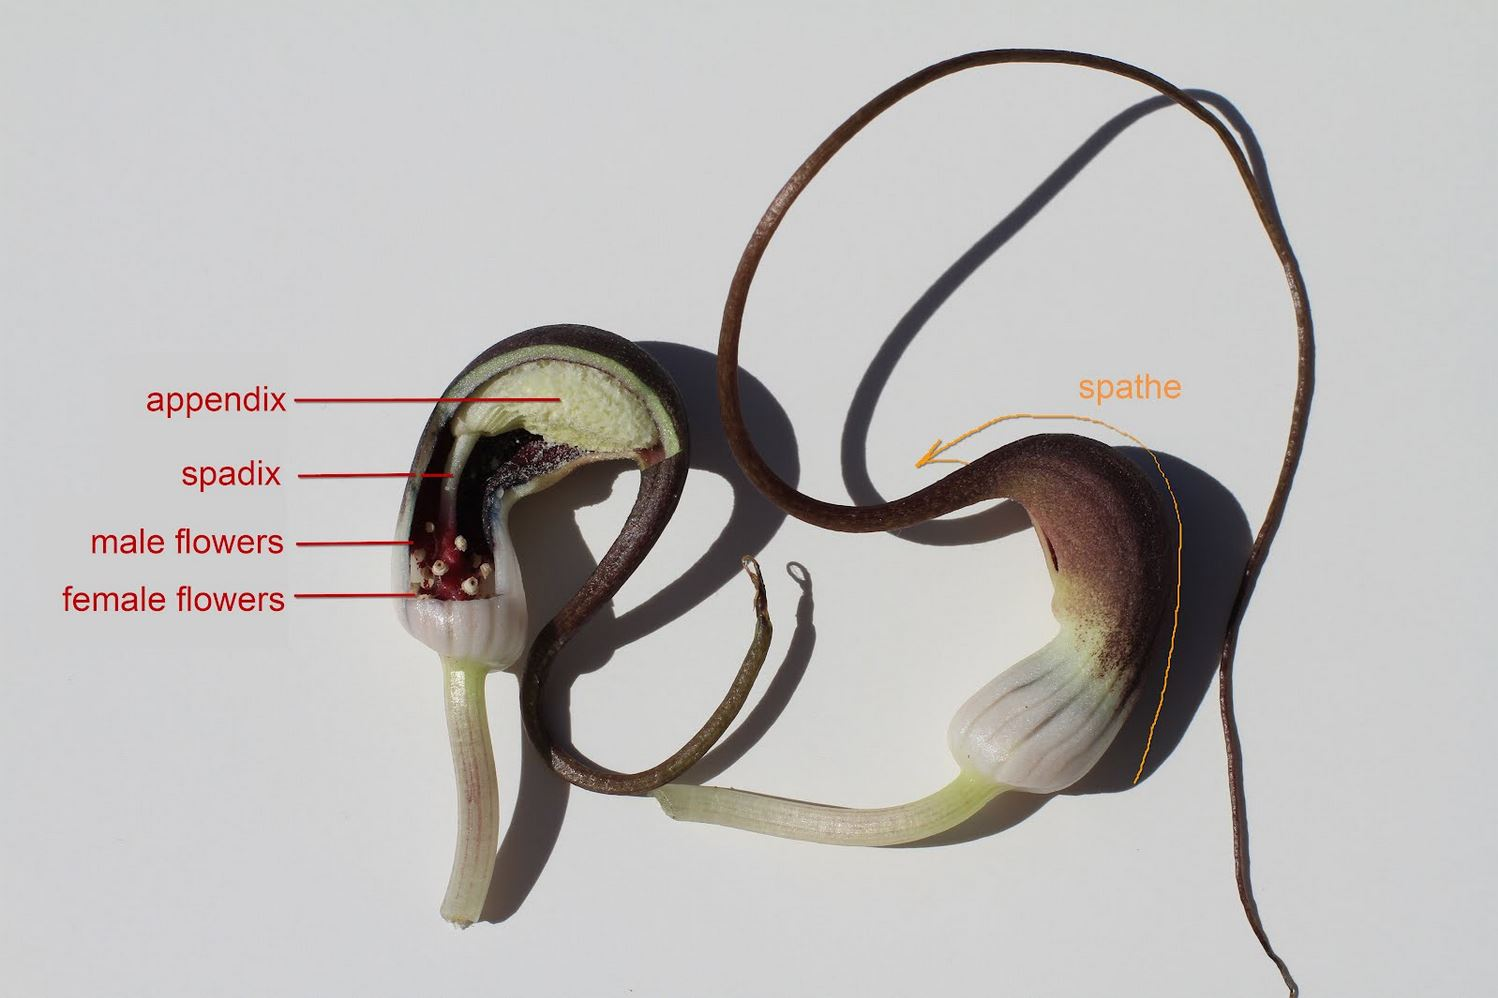 Anatomy of a mouse plant inflorescence  [SOURCE]